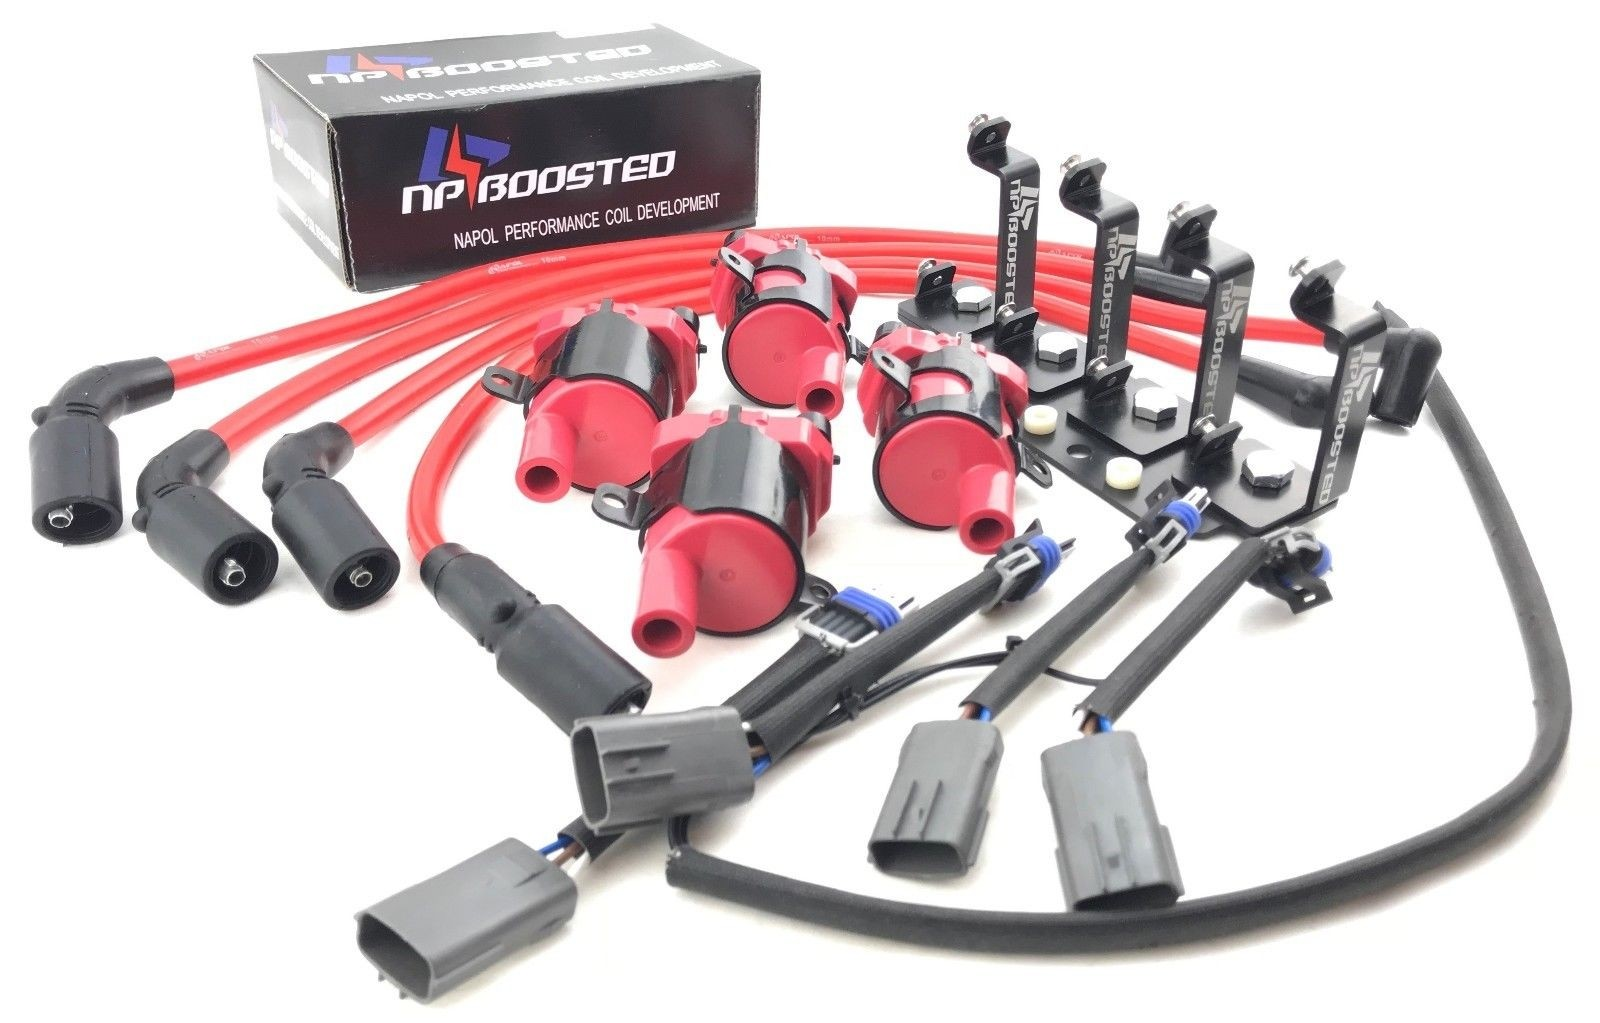 mazda rx 8 rx8 d585 ignition coil packs kit wires w harness mazda rx 8 rx8 d585 ignition coil packs kit wires w harness mounting bracket